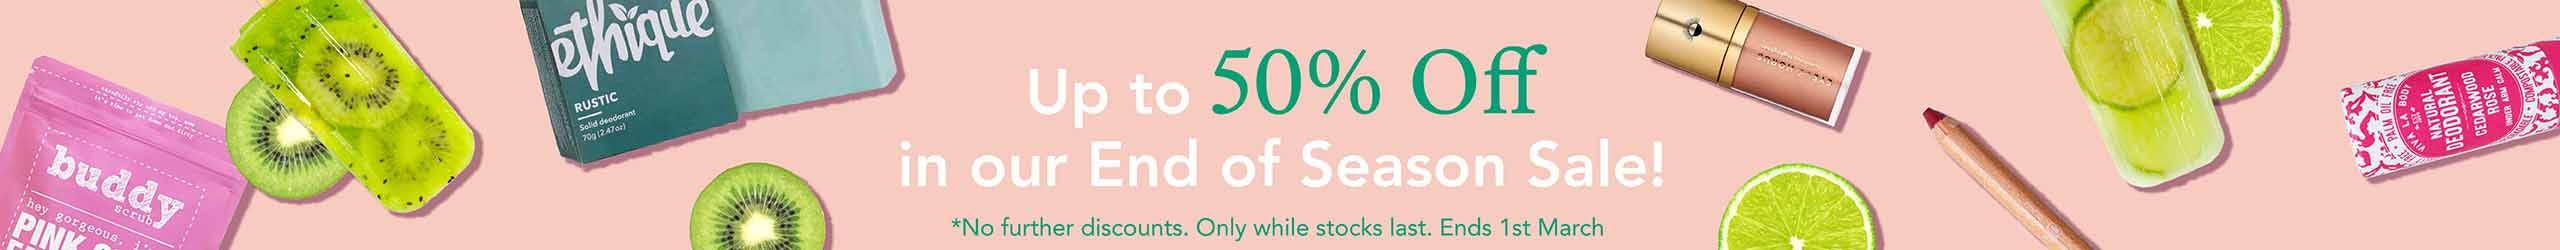 Up to 50% Off in Our Summer Sale